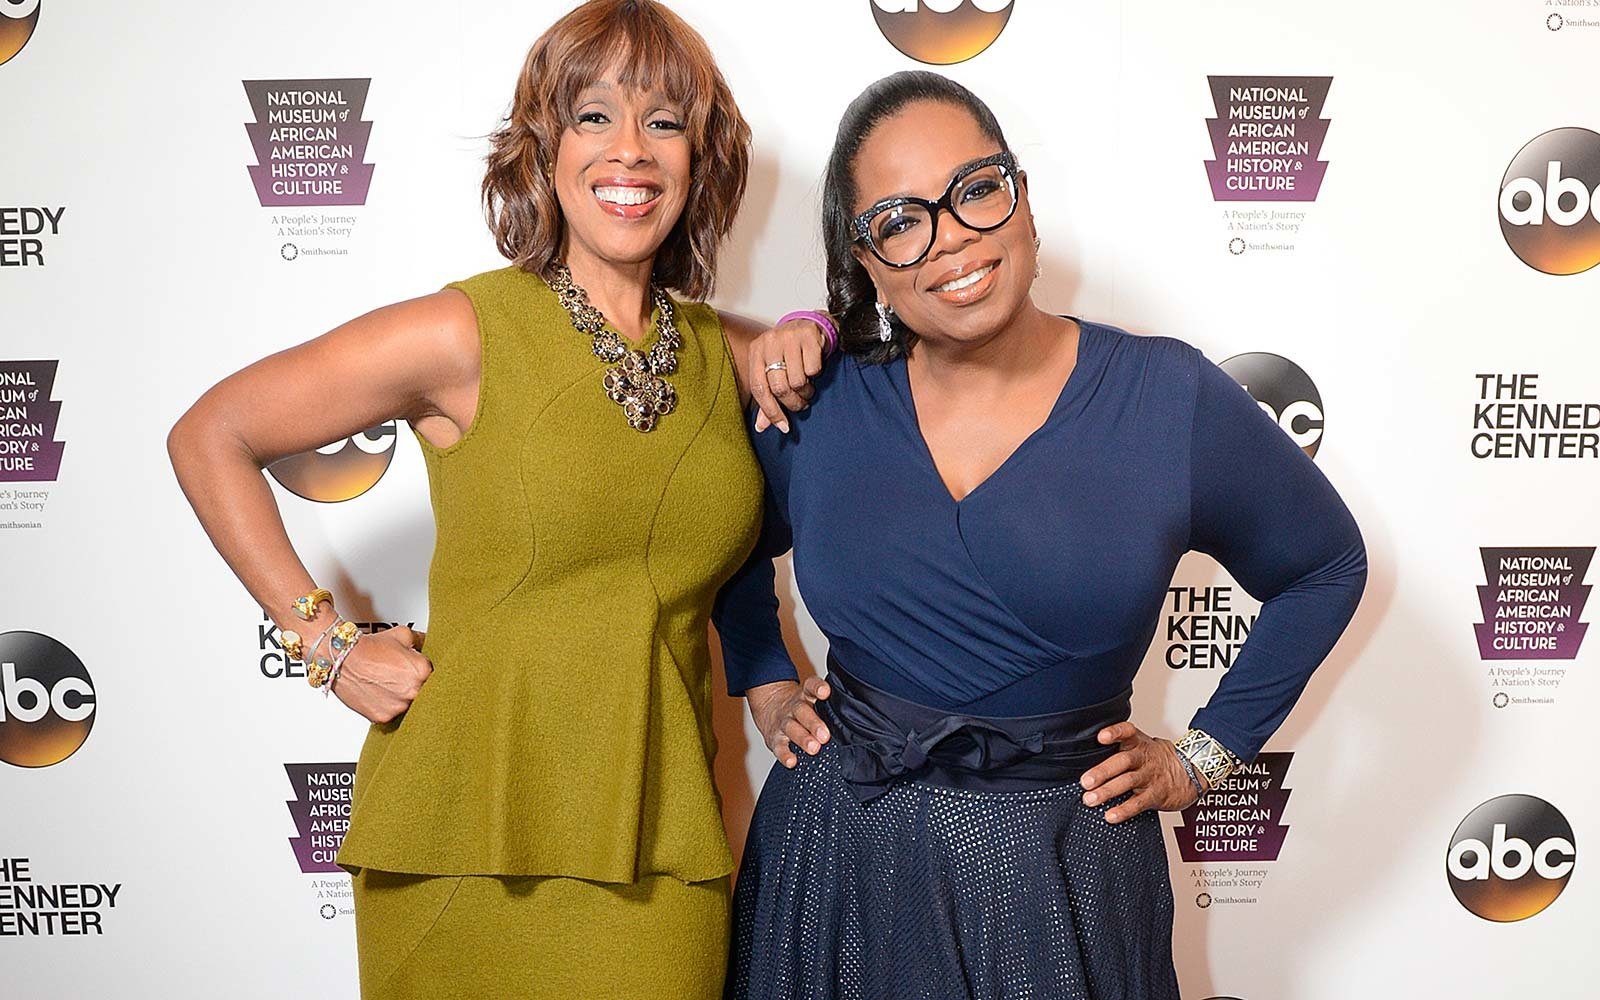 Oprah Has a Ticket to Cruise